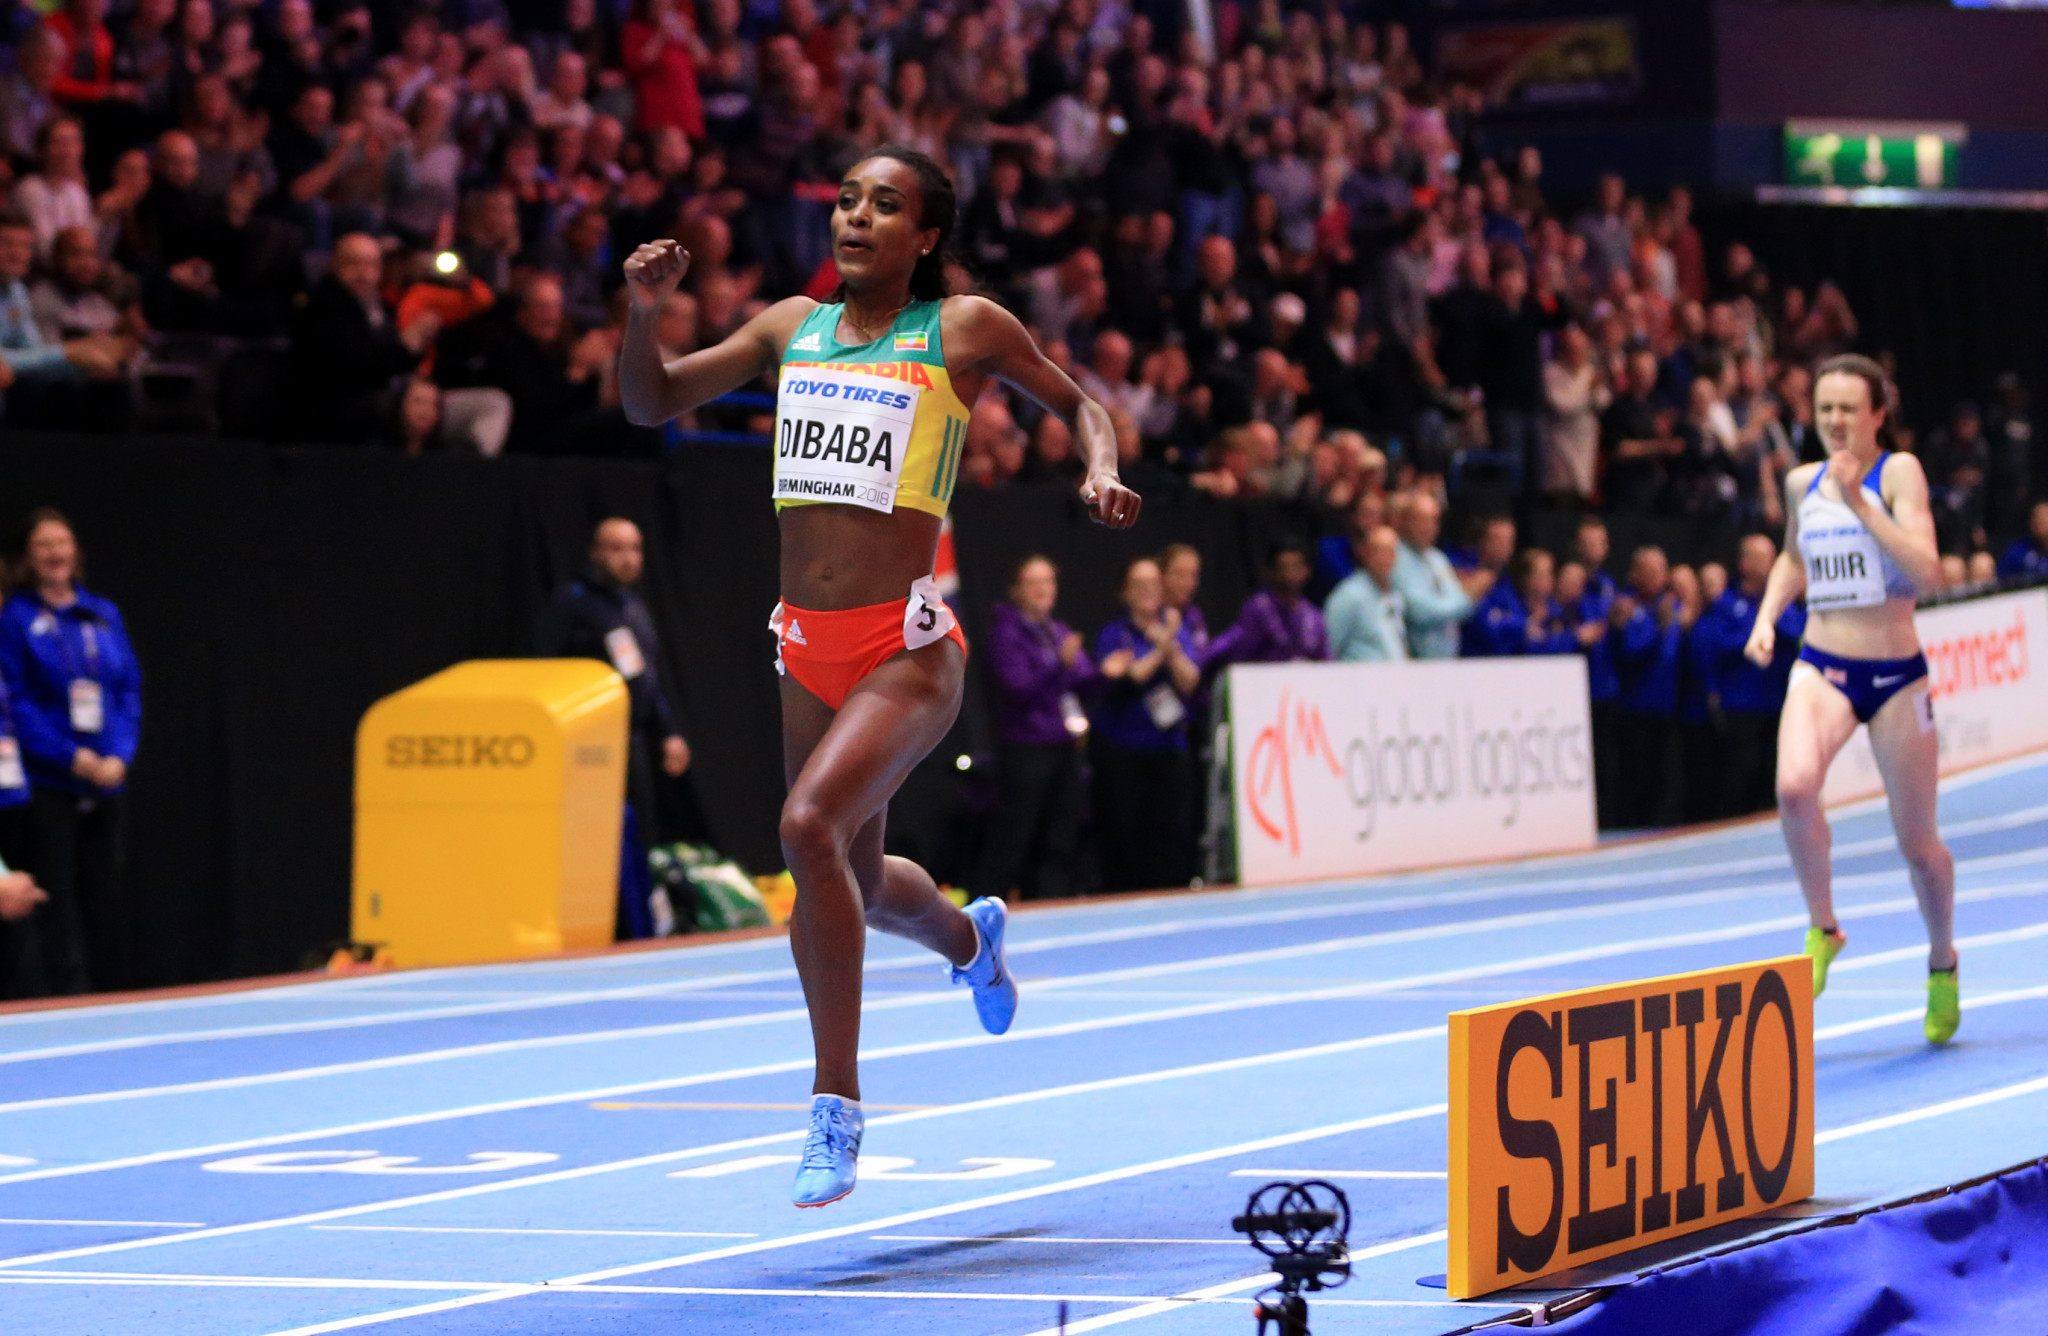 Ethiopia's Genzebe Dibaba won her second gold medal at the IAAF World Indoor Championships, adding the 1500m to the 3,000m she won last night as Britain's Laura Muir finished second ©Getty Images